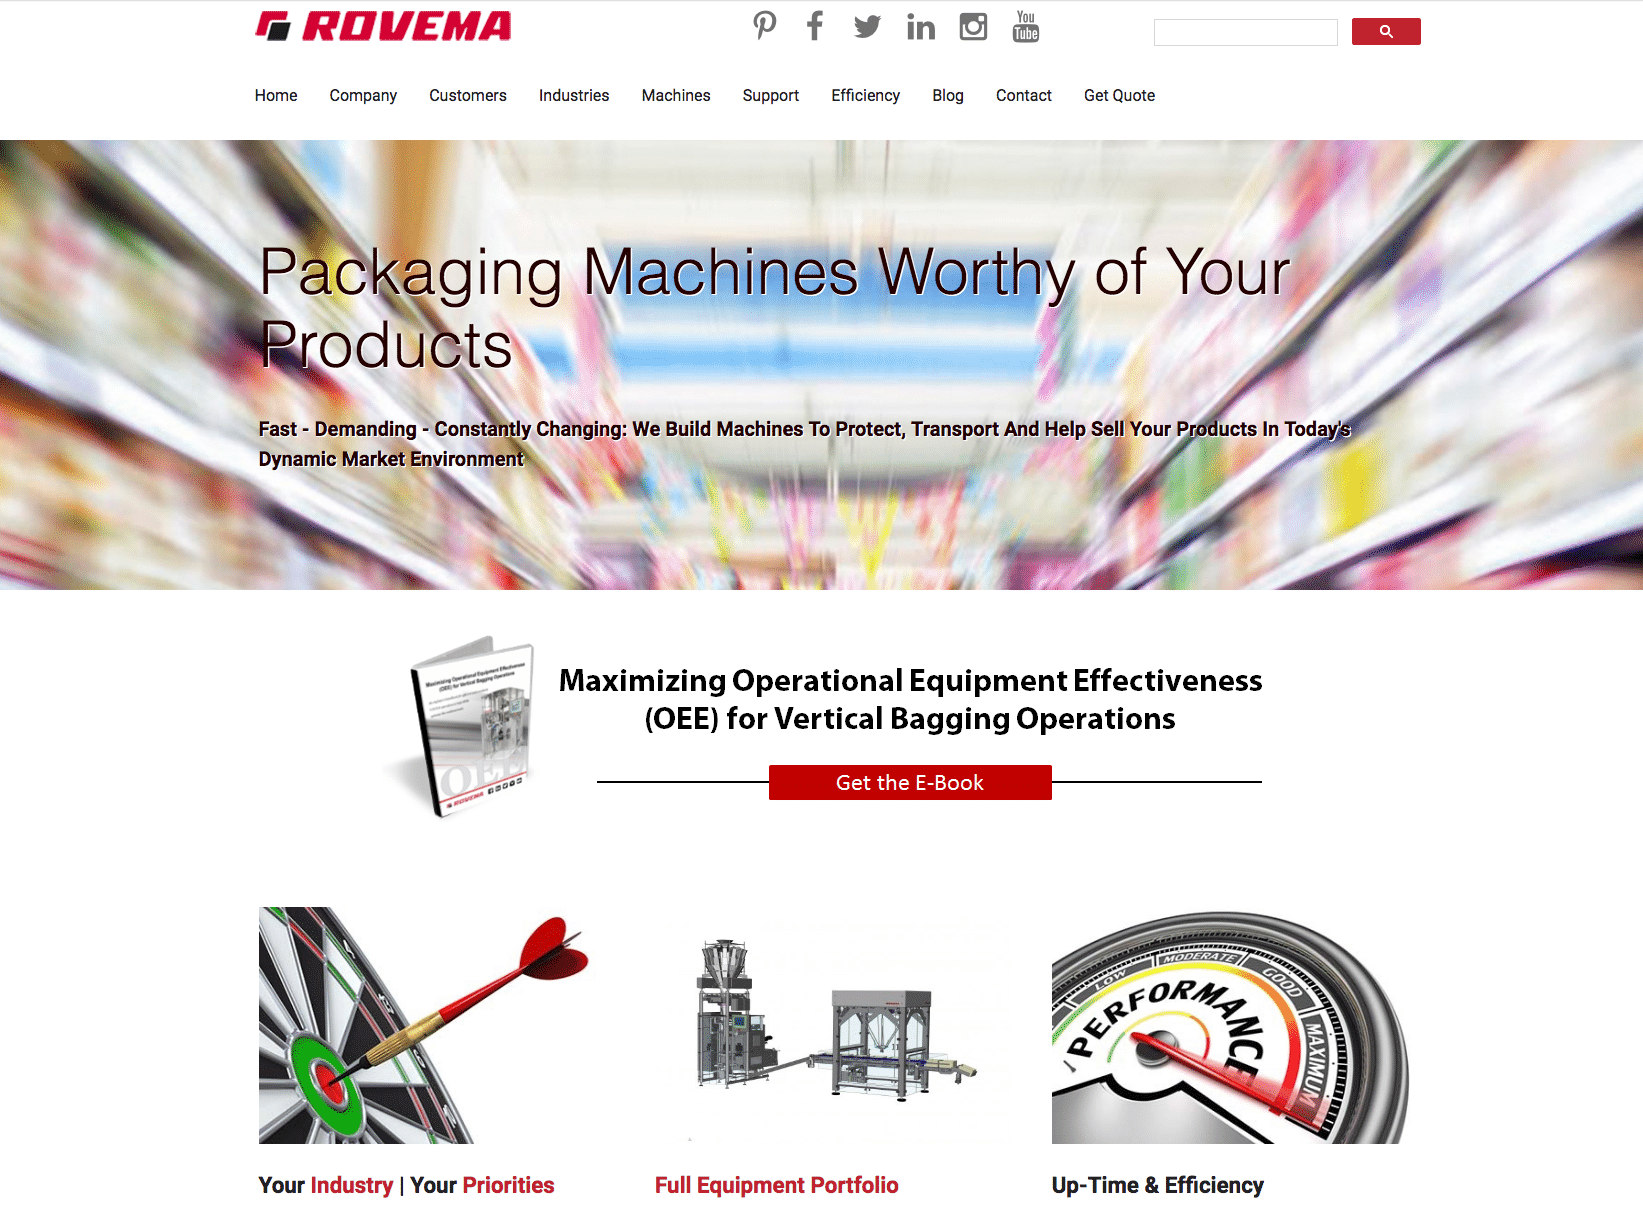 Rovema website provides expertise and insight for CPG manufacturers to improve VFFS operations